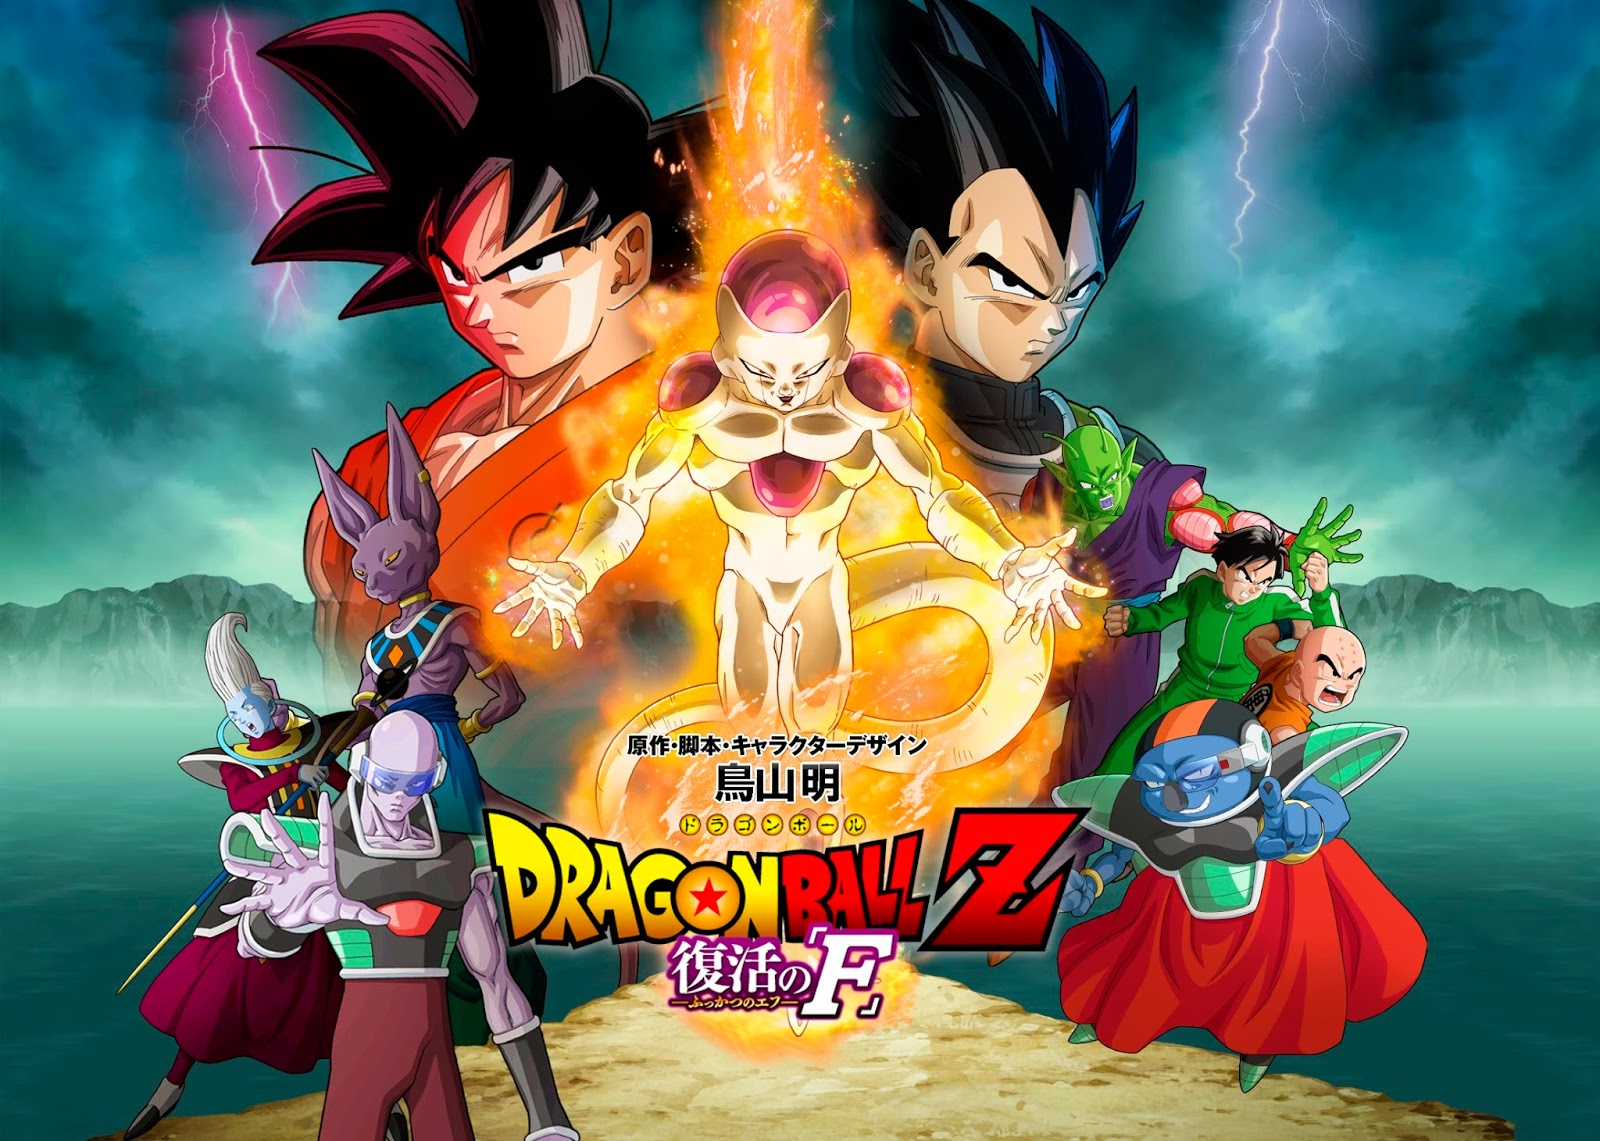 Dragon ball z resurrection f film dates have been released sbs popasia - Photo dragon ball z ...